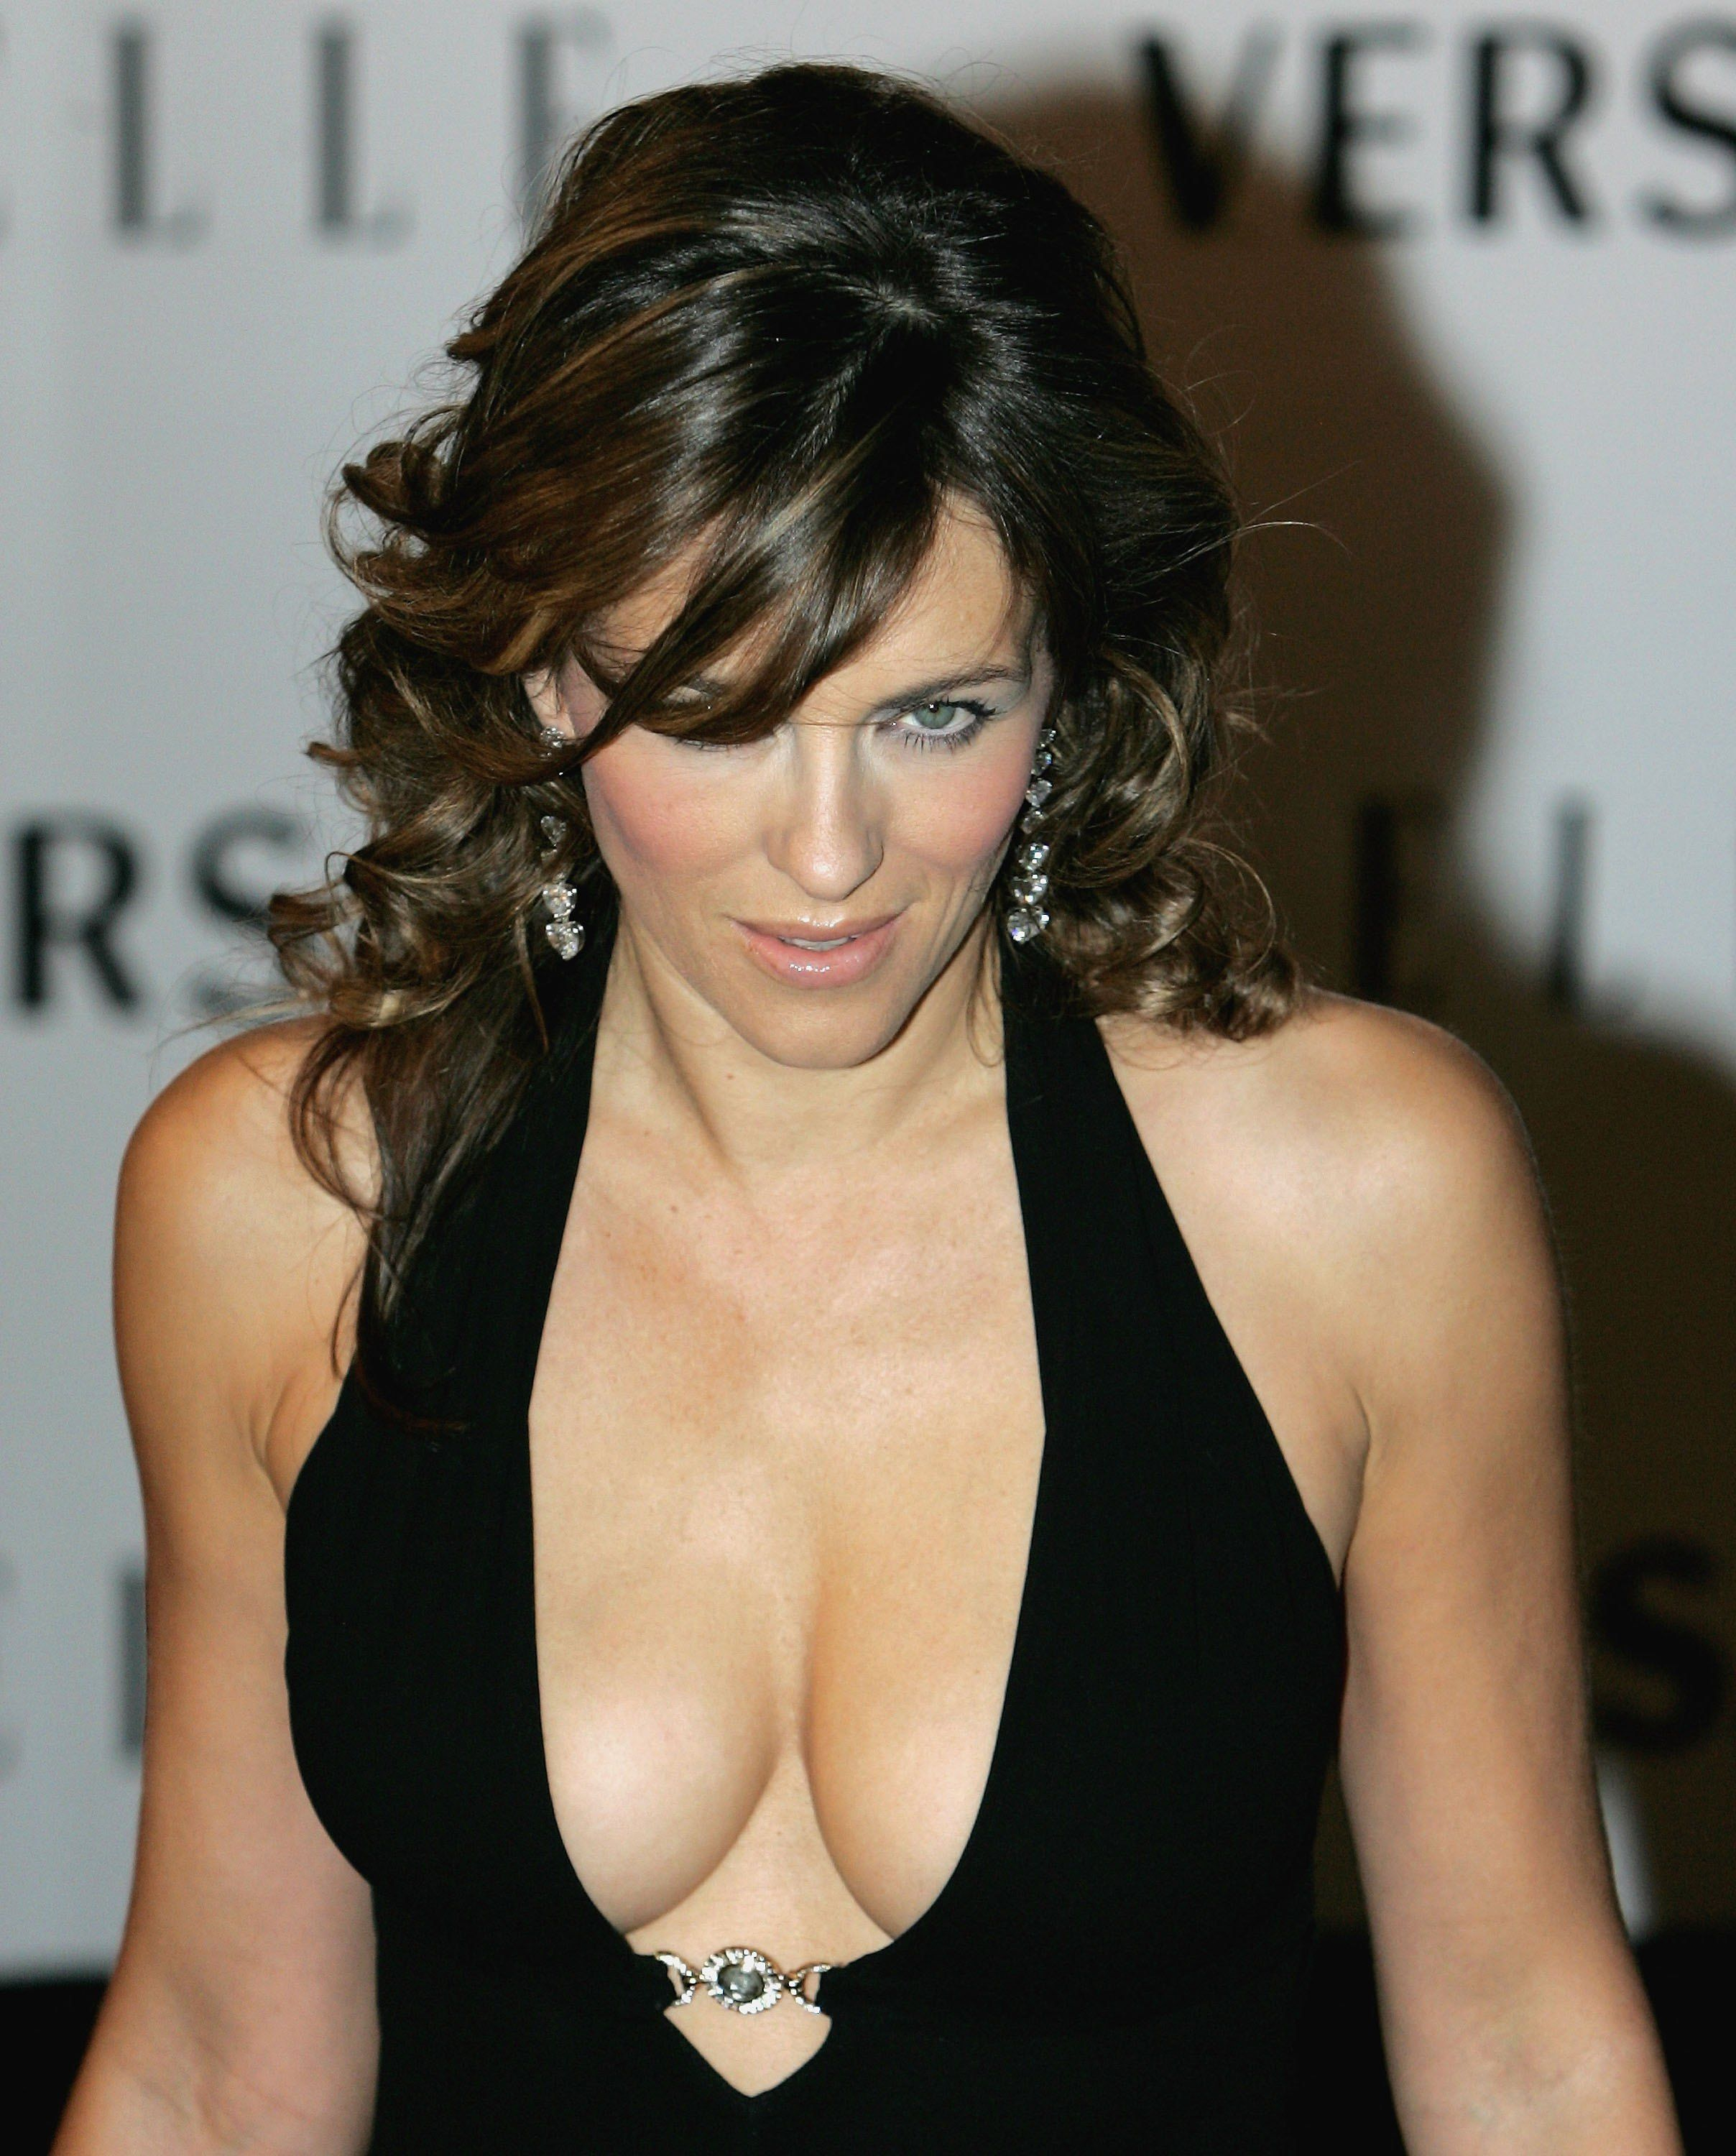 Keely Hawes Topless Beautiful elizabeth hurley as elena | a girl can wish 50 shades cast